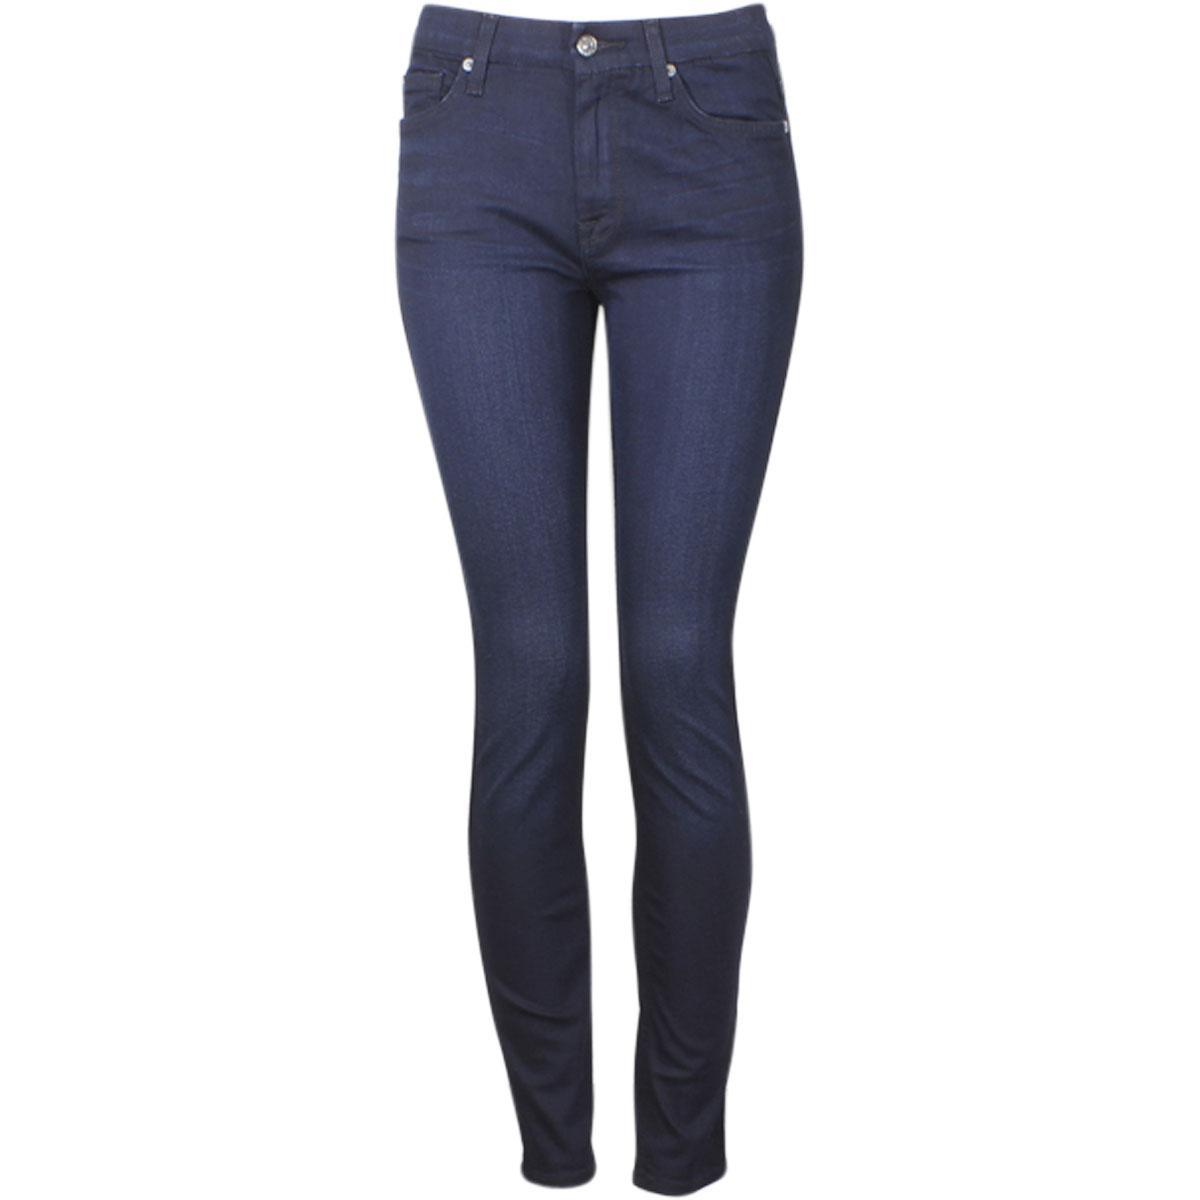 Image of 7 For All Mankind Women's (B)Air Denim The High Waist Skinny Jeans - Blue - 25 (0)